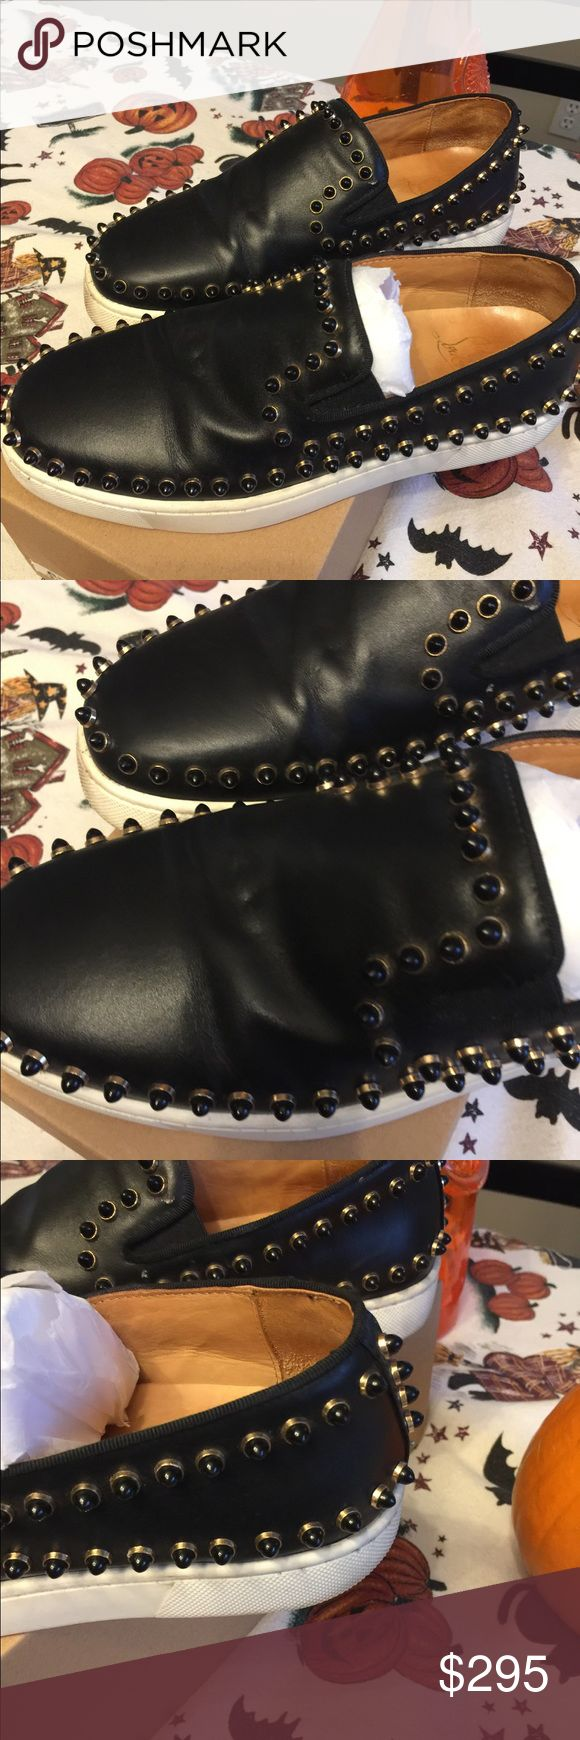 Christian Louboutin Pik Boat black slip on shoe Black leather with spikes in the comfort stylish slip on shoe authentic. Wear on back on heels and one spike is missing on left lower bottom of shoe. Christian Louboutin Shoes Sneakers